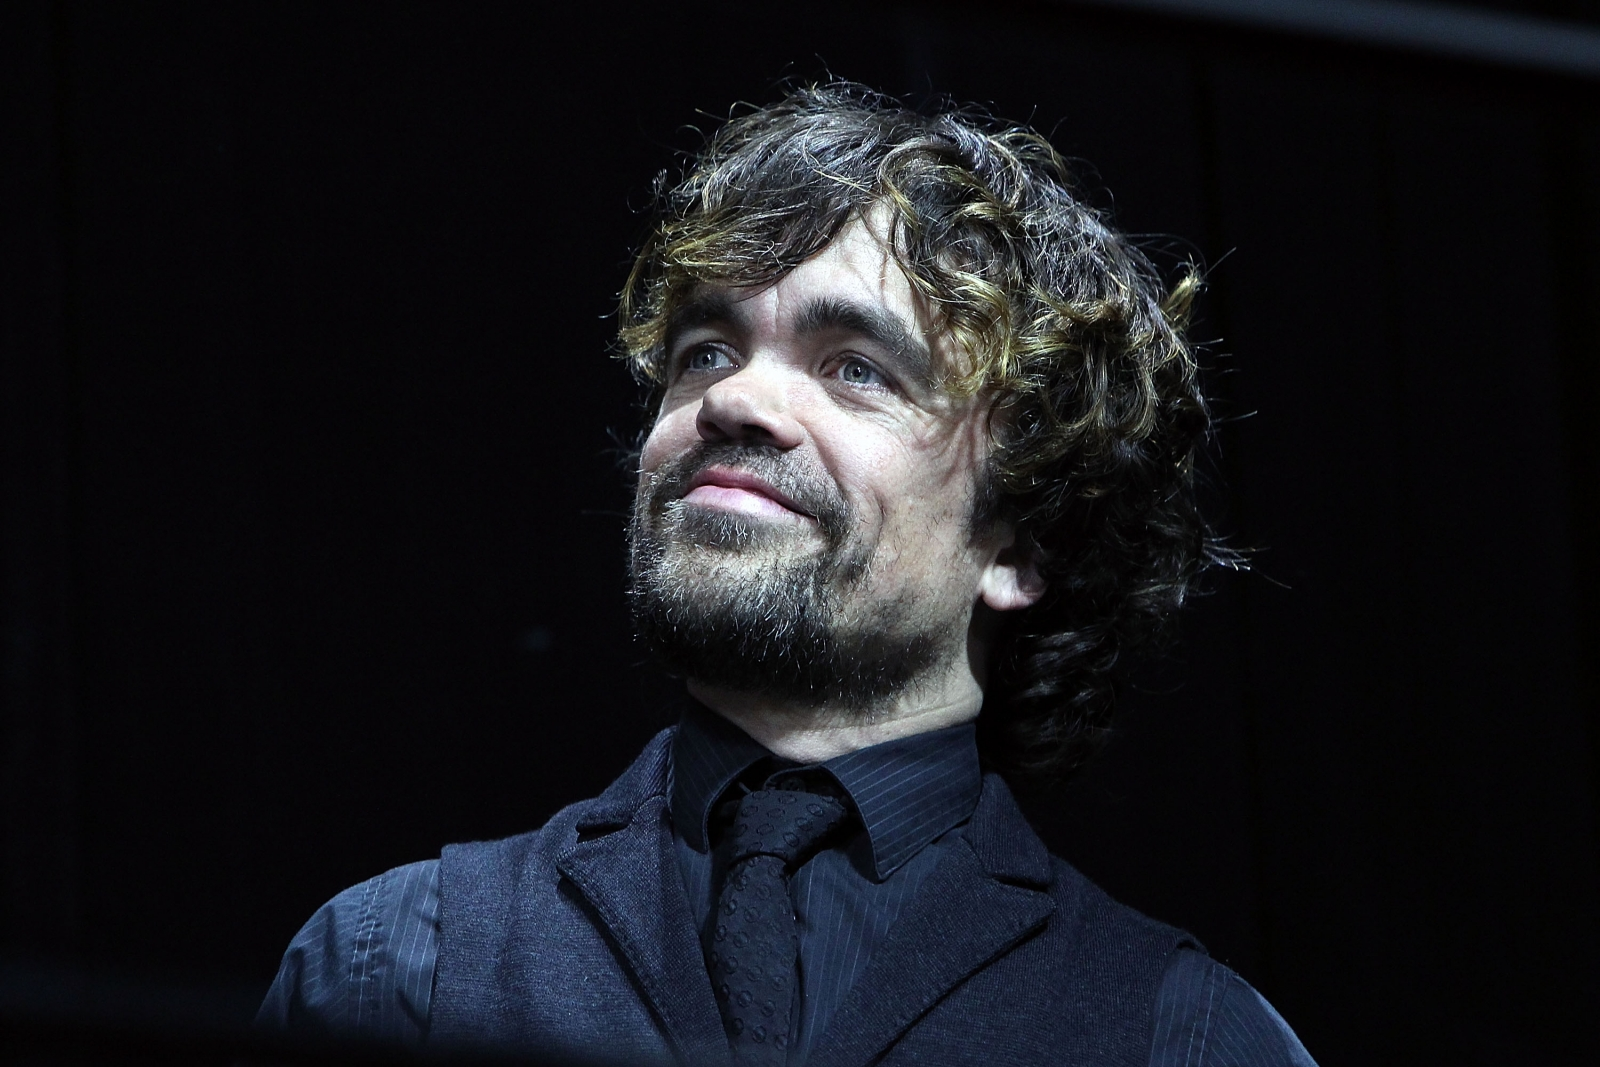 Who could Peter Dinklage play in Avengers: Infinity War?